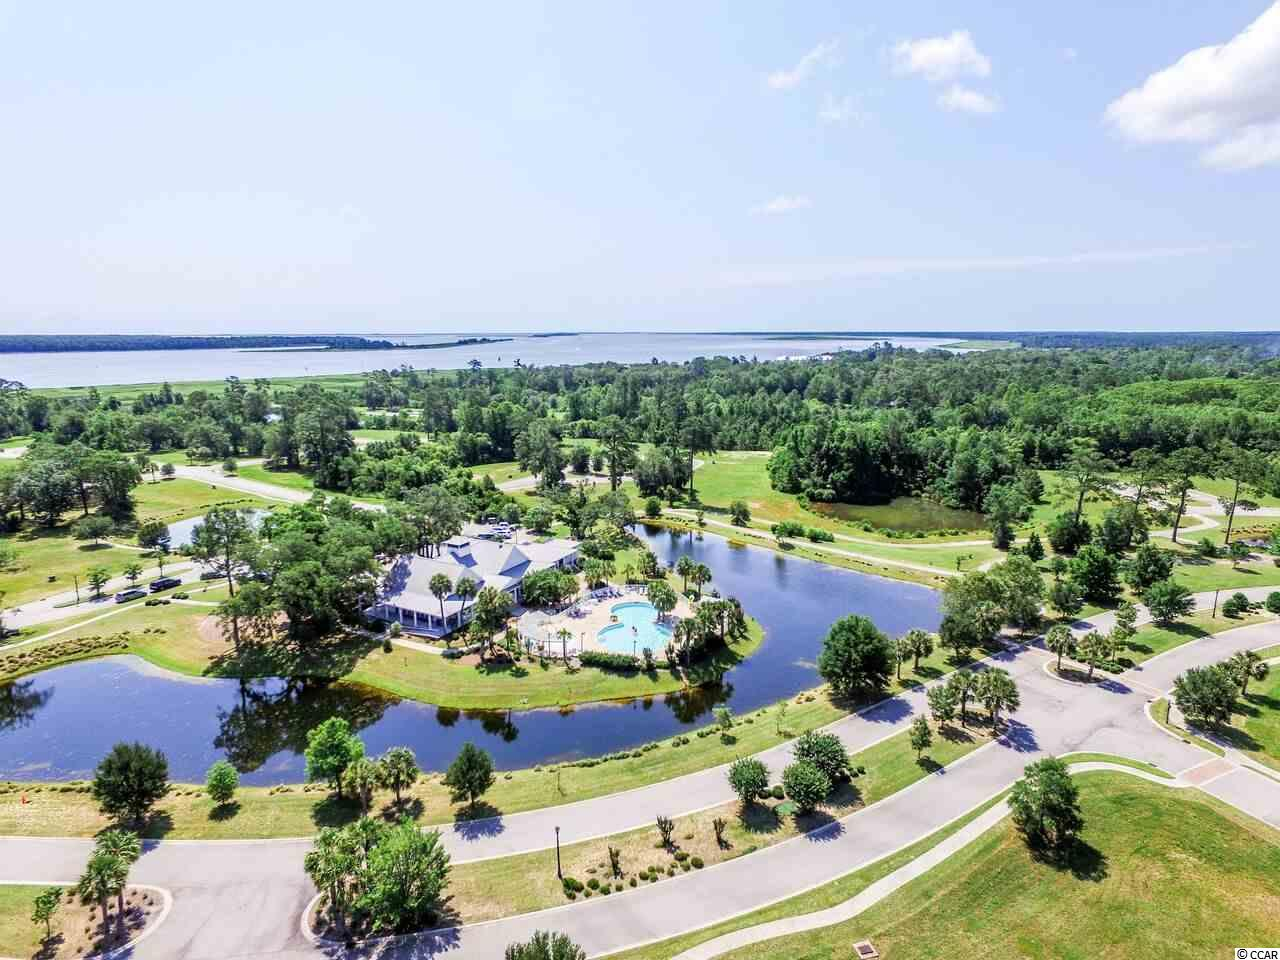 Land for Sale at 113 OAKLAWN ROAD 113 OAKLAWN ROAD Georgetown, South Carolina 29440 United States